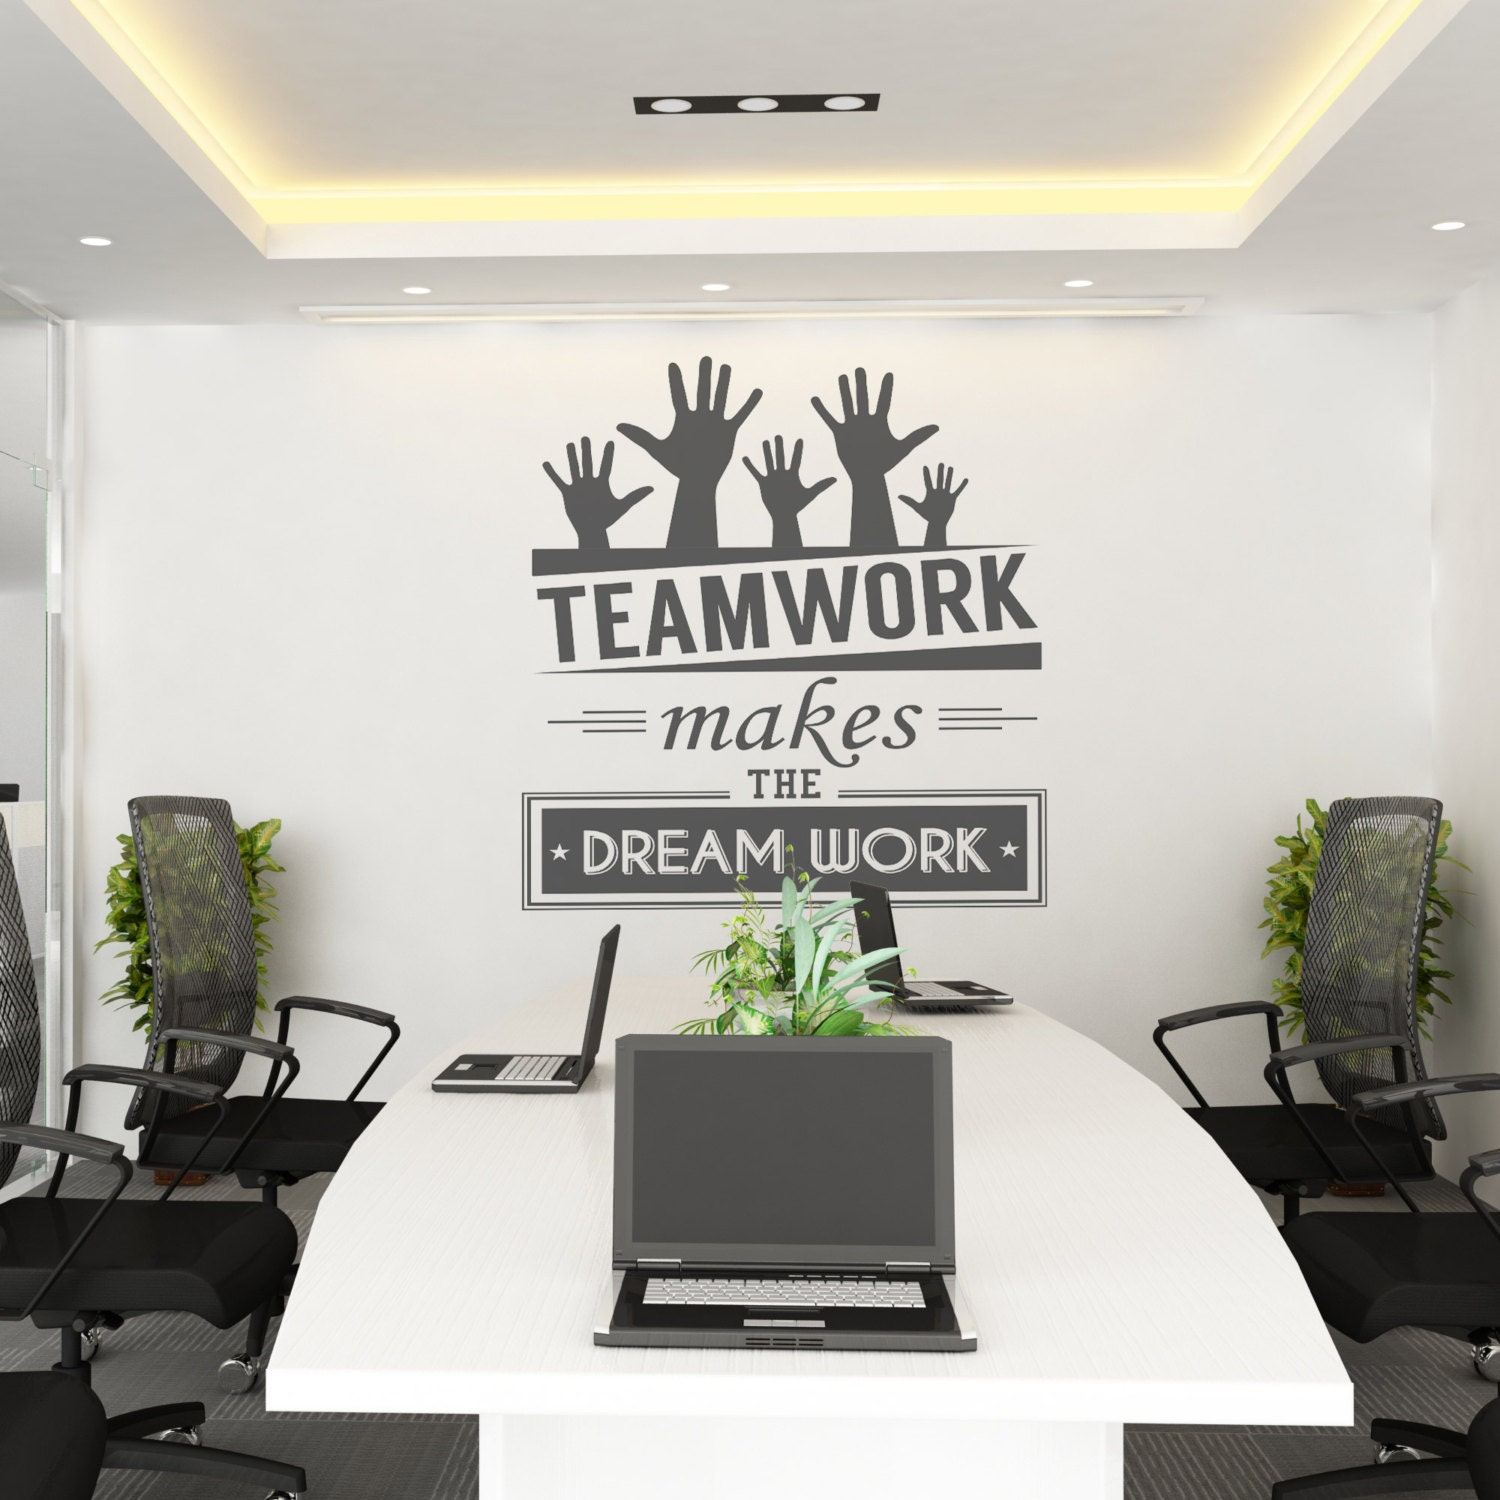 Teamwork makes the dream work teamwork office wall art for Office interior design quotes